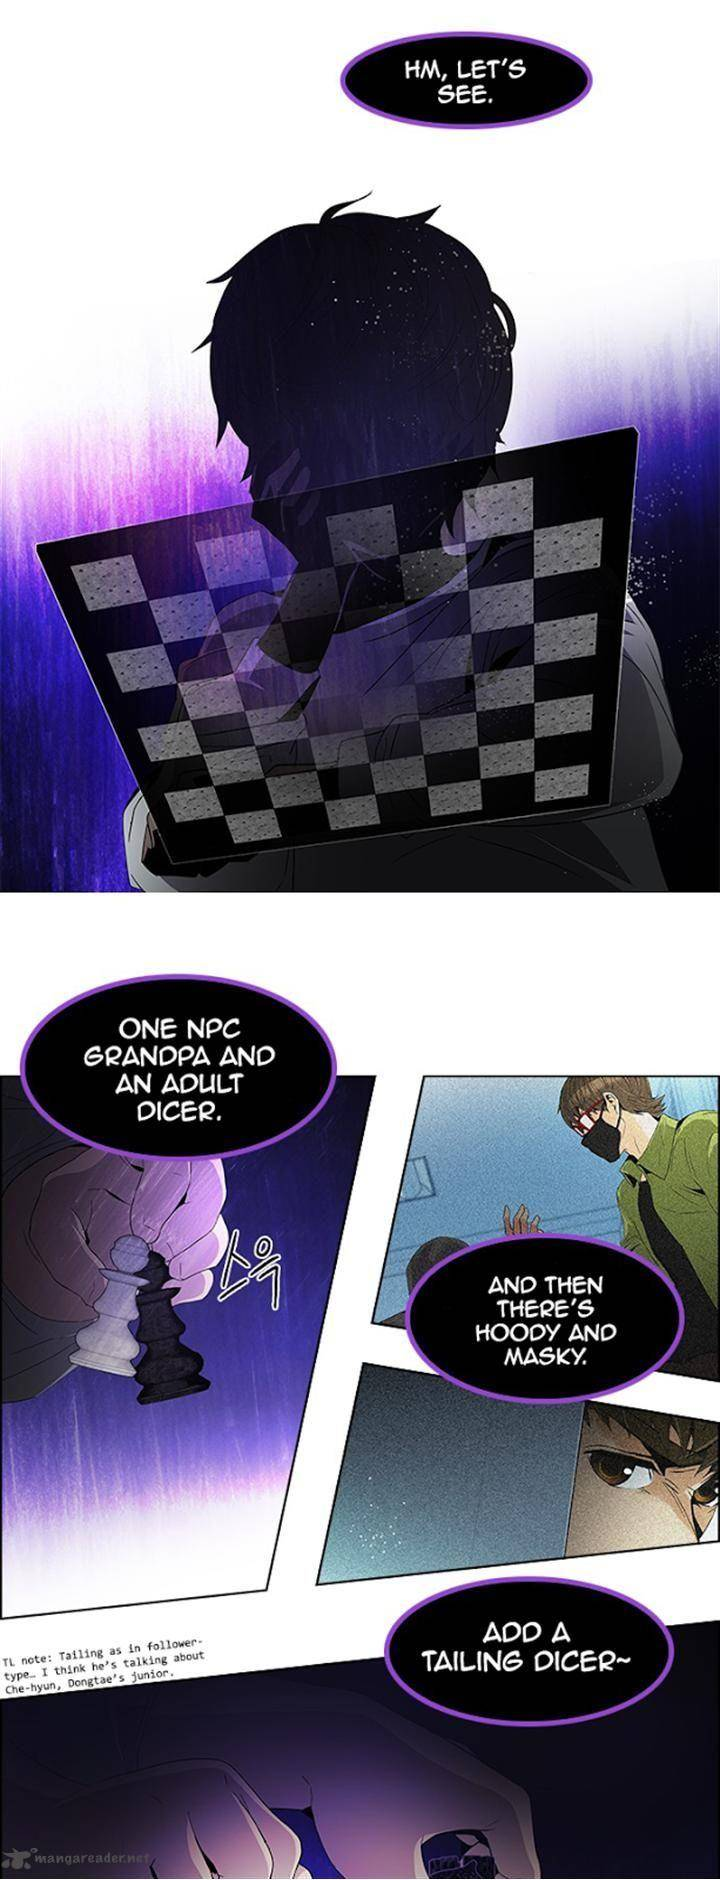 dice_the_cube_that_changes_everything_101_21